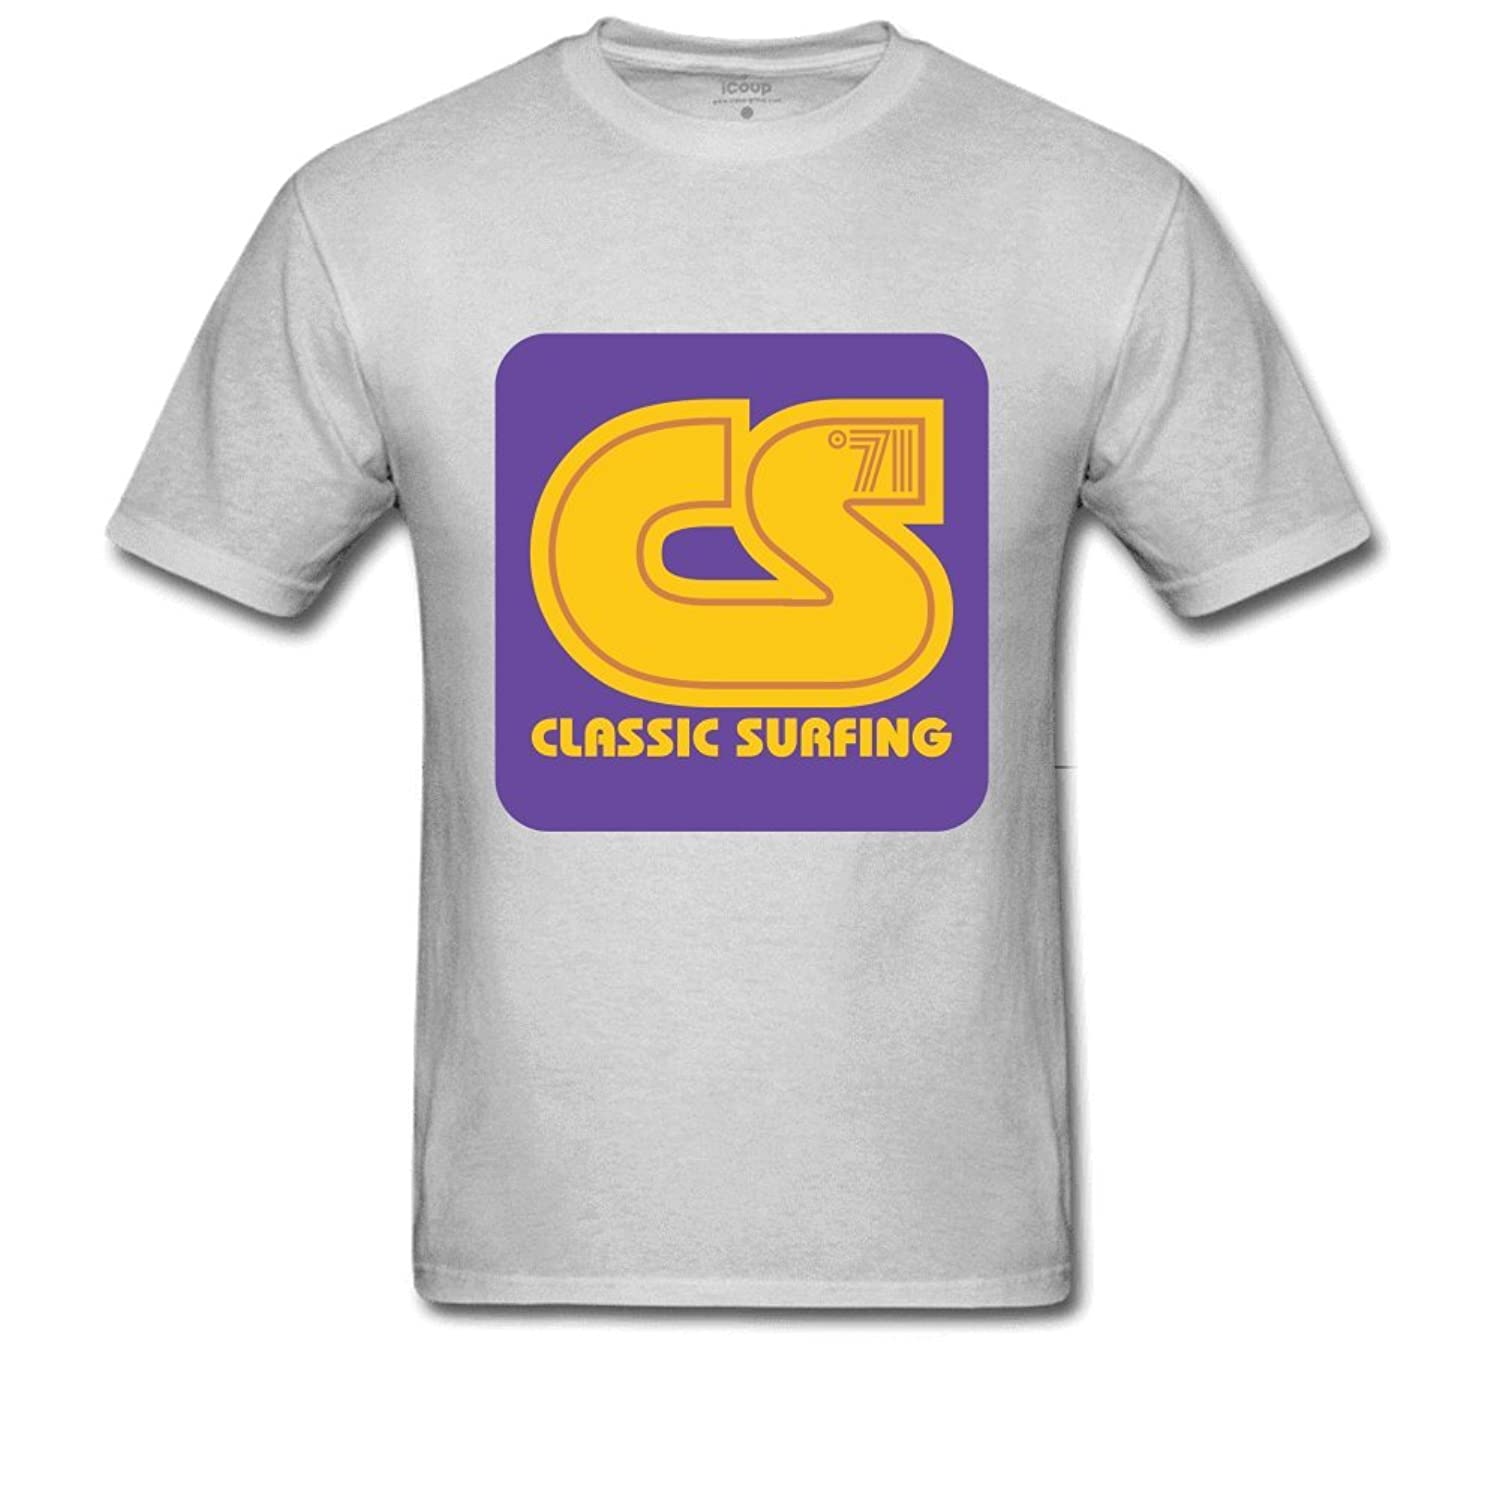 Classic Surfing Men's Printed T Shirt S Gray